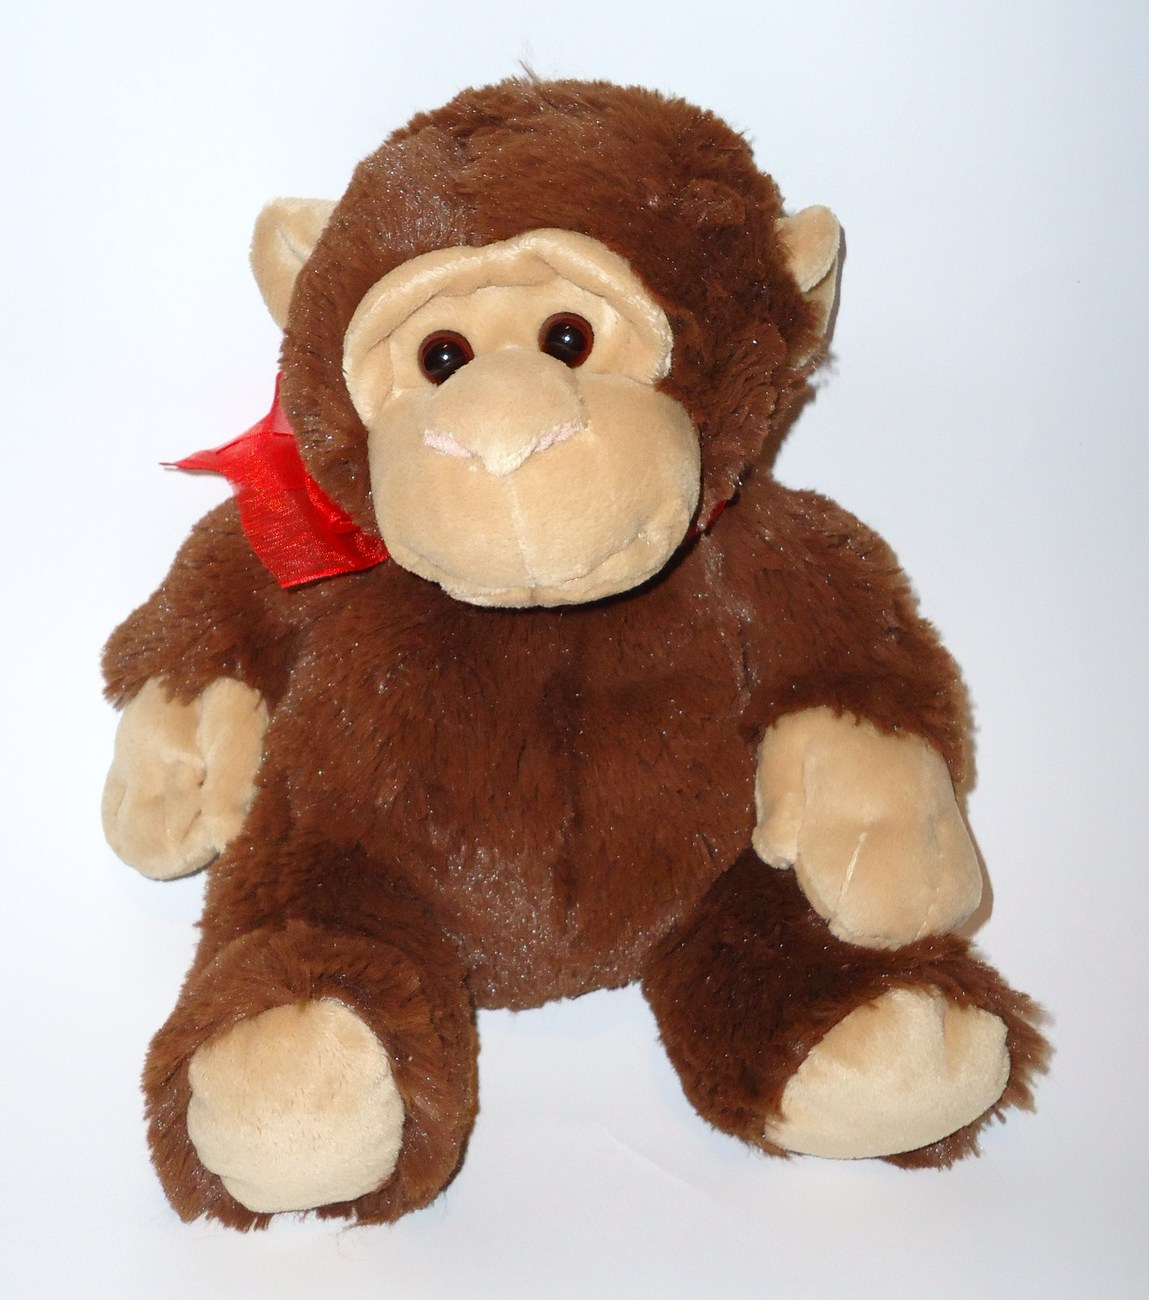 Walmart Plush Brown Monkey Red Bow Stuffed Animal Valentine's Day Shaggy Fur